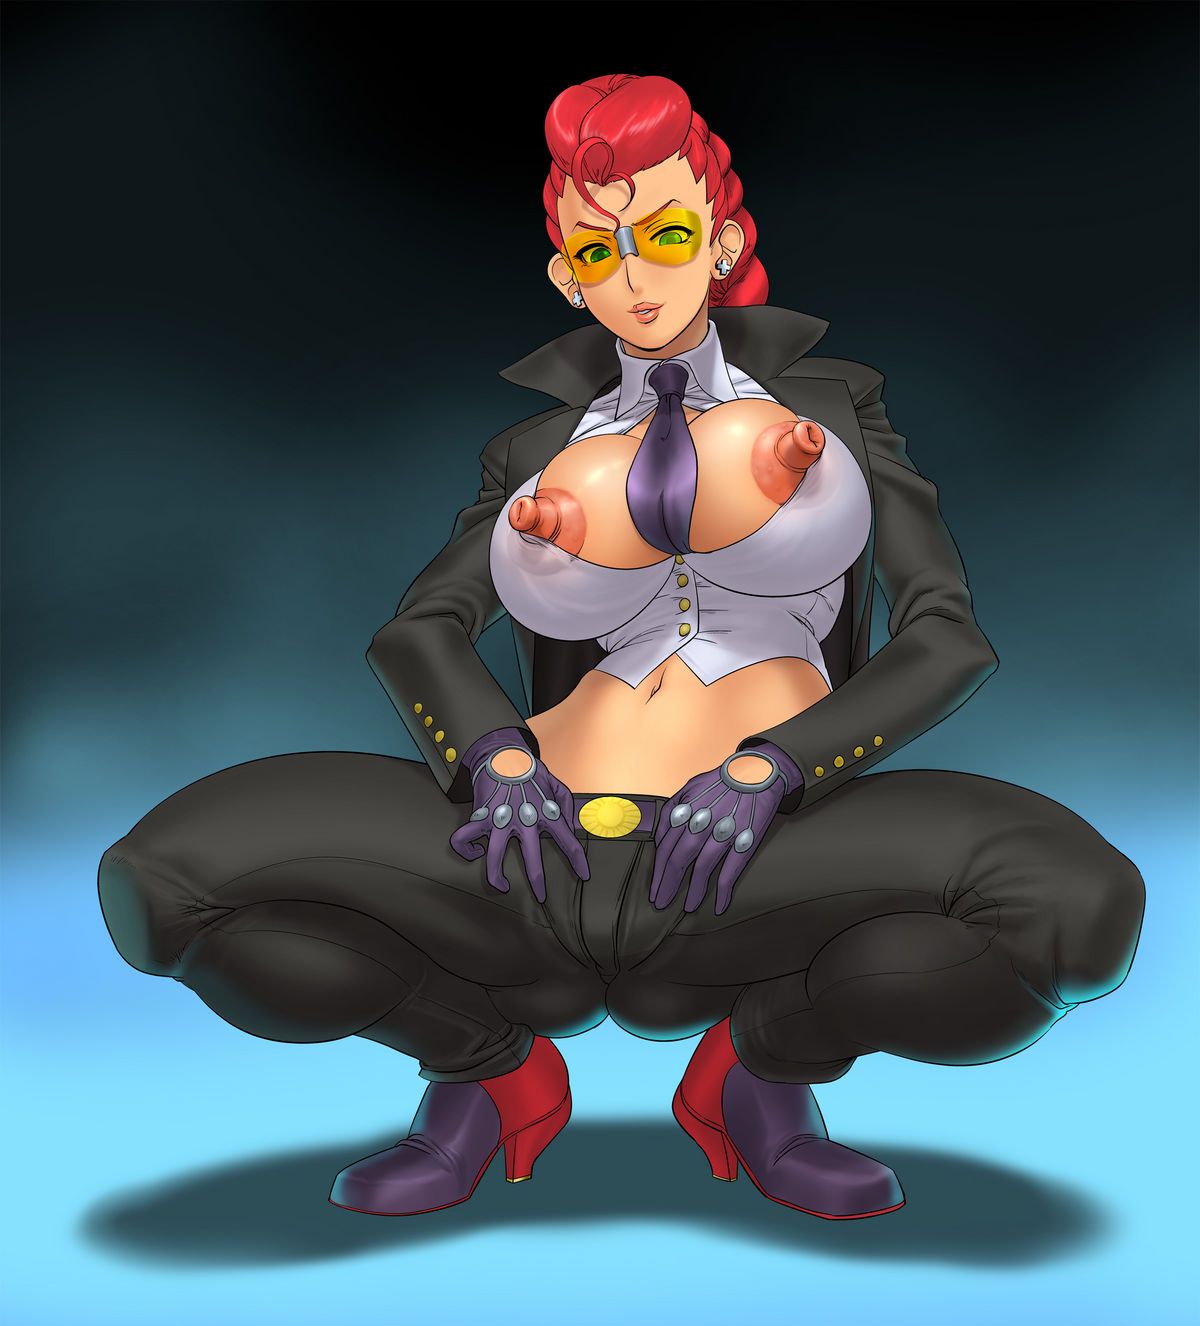 C viper street fighter bigtits juicy nude photo